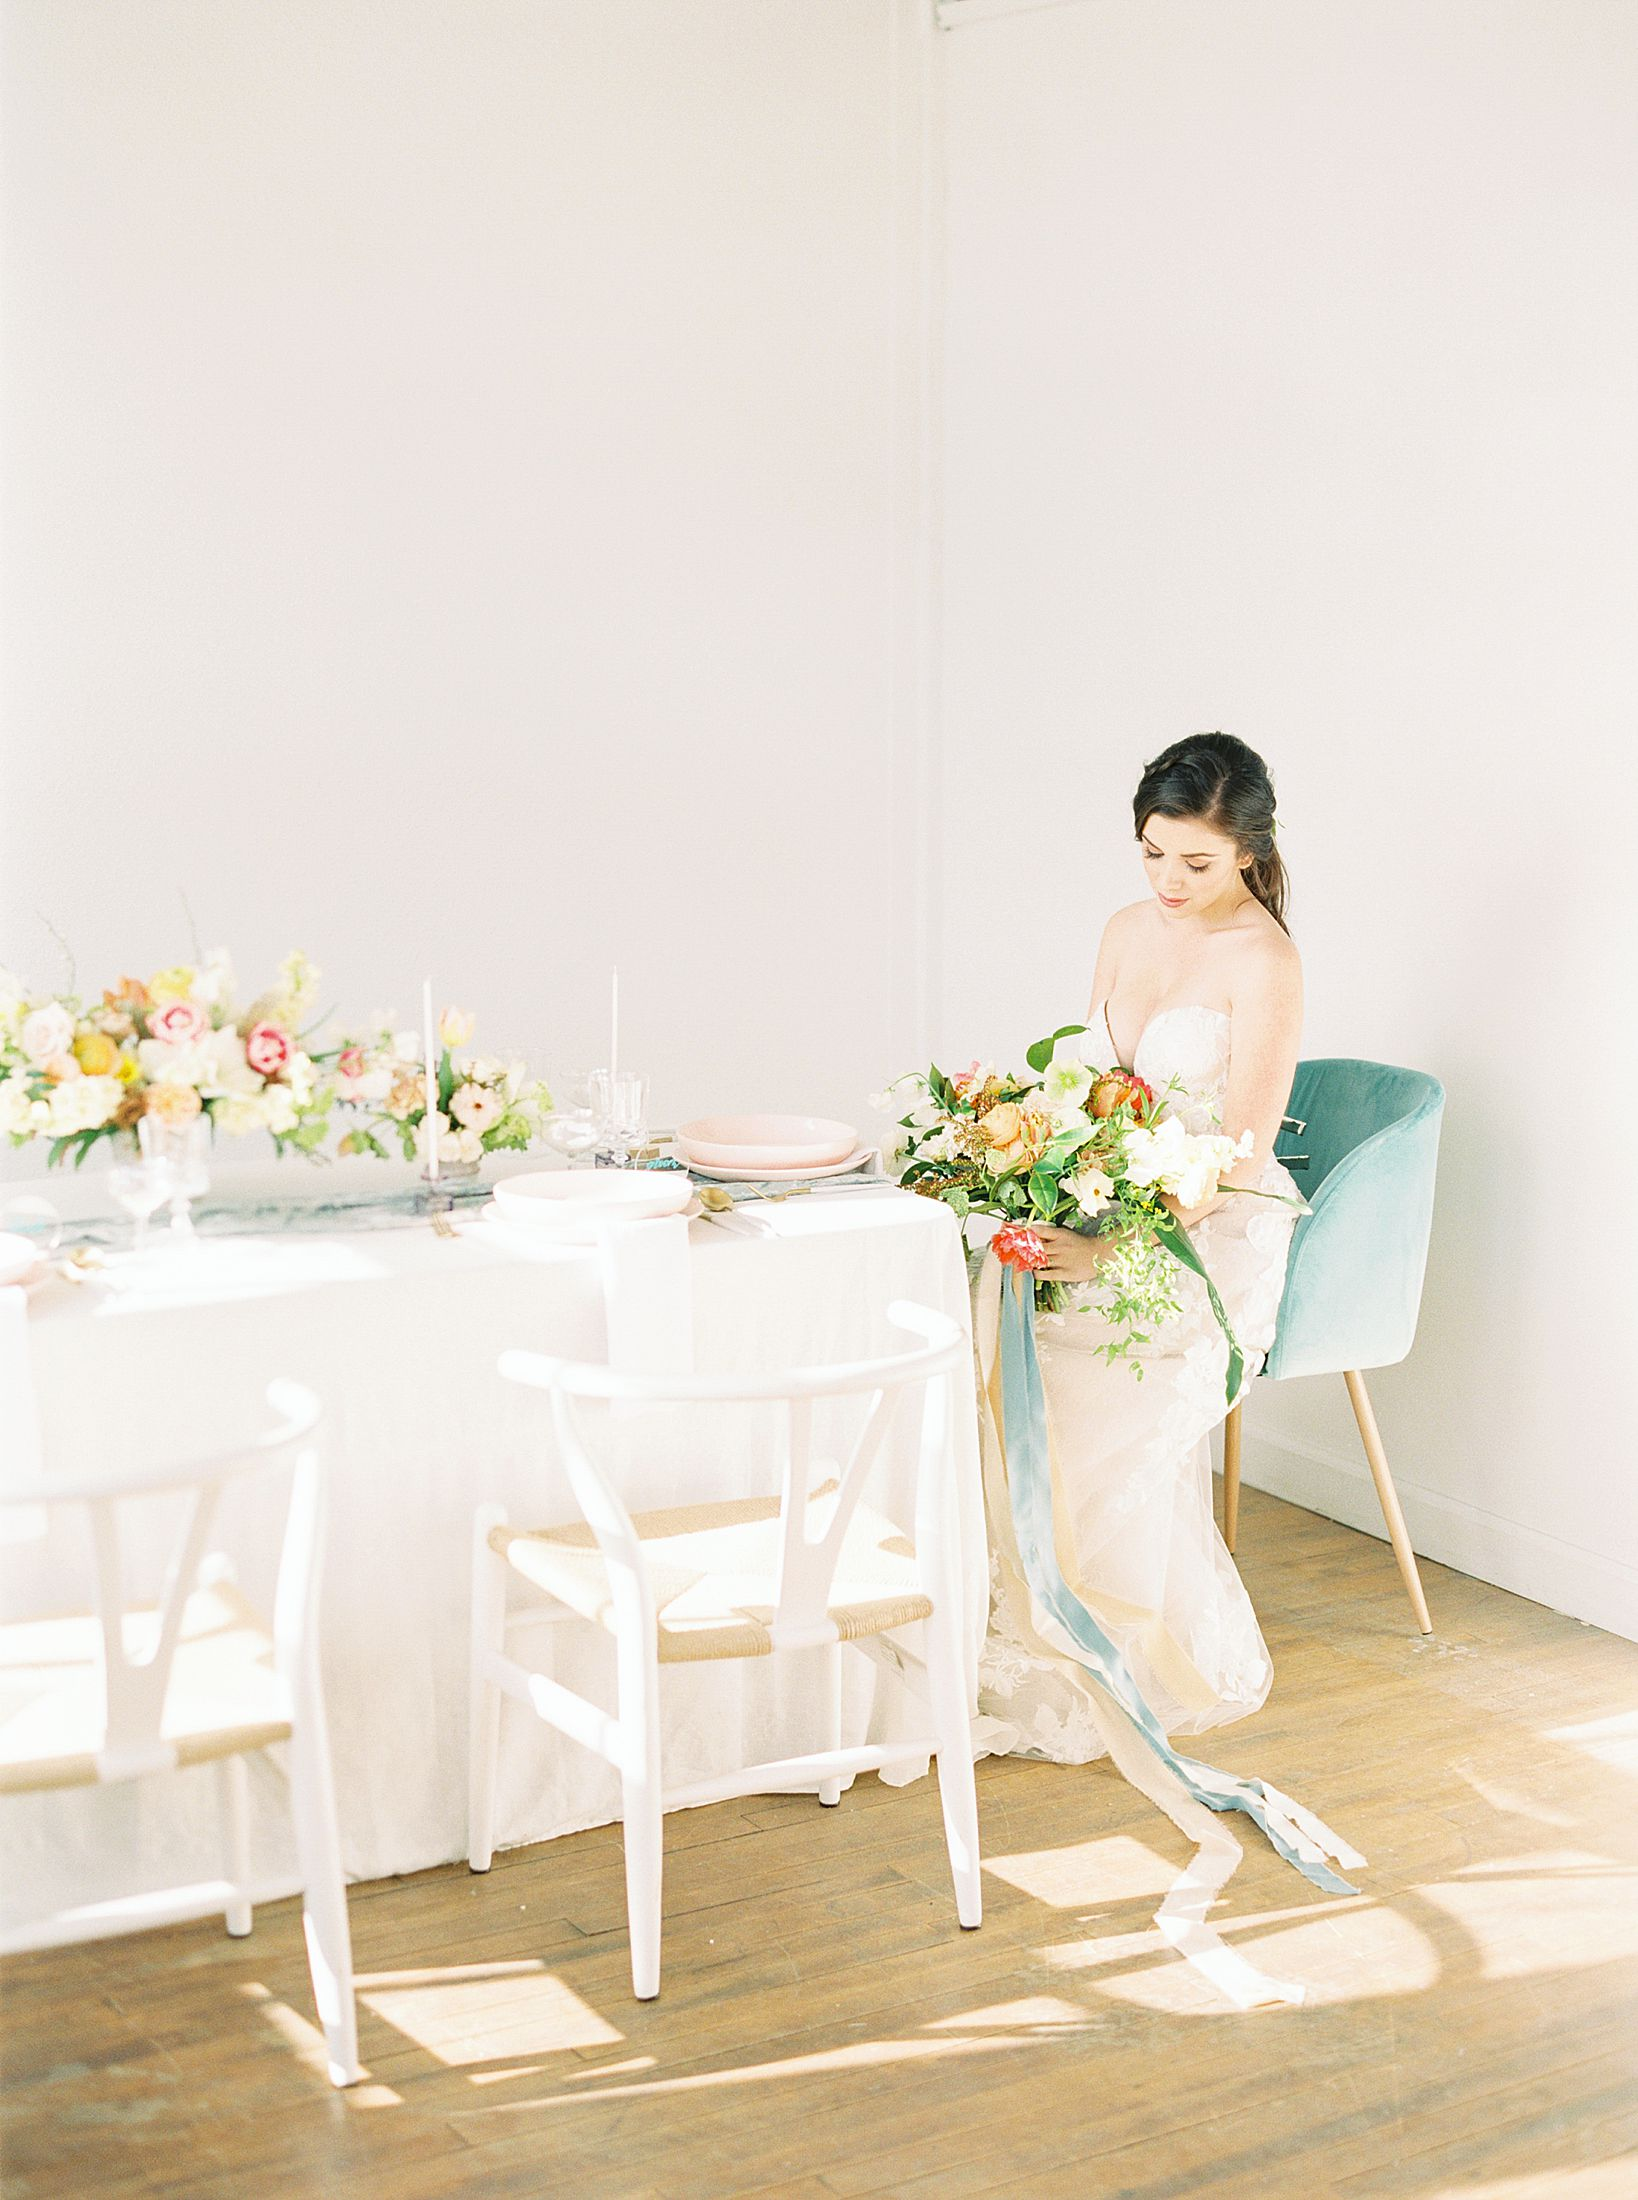 Bay Area Spring Wedding Inspiration - Ashley Baumgartner - Inspired By This - Party Crush Studio and Lens of Lenox Videography - Bay Area Wedding Photography_0068.jpg